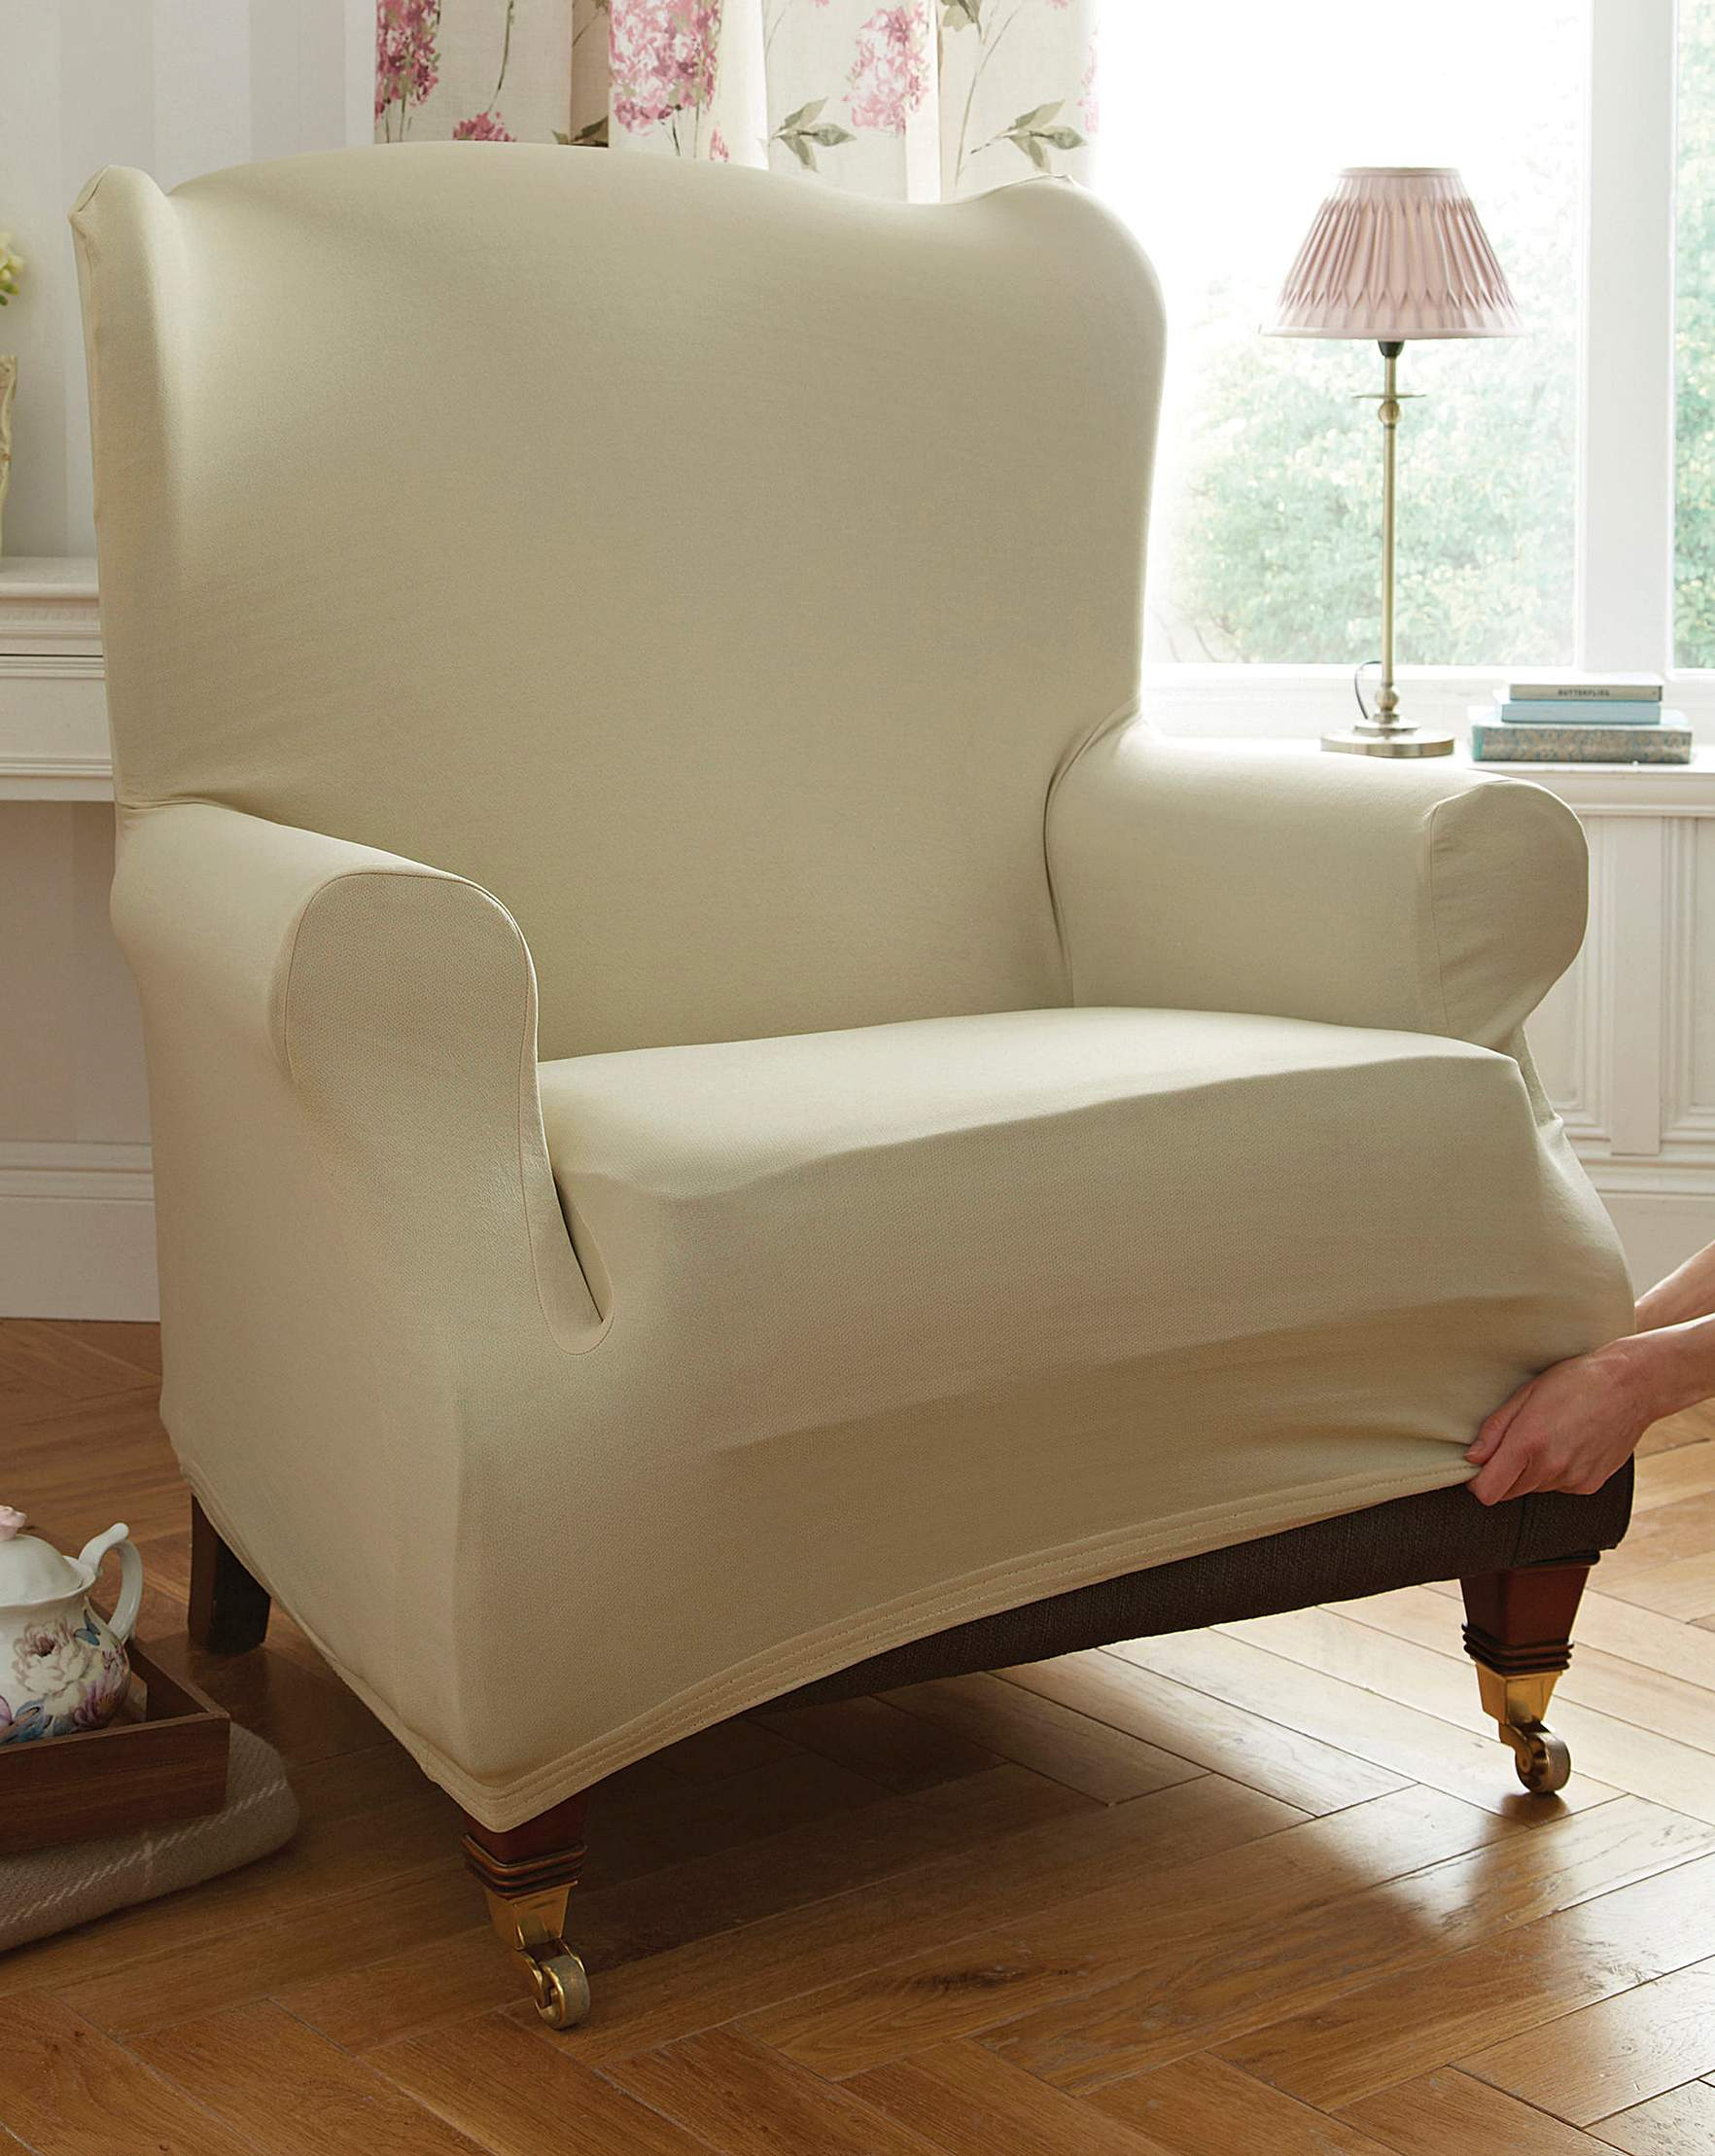 loose chair covers australia stressless chairs sale sofa ready made india brokeasshome